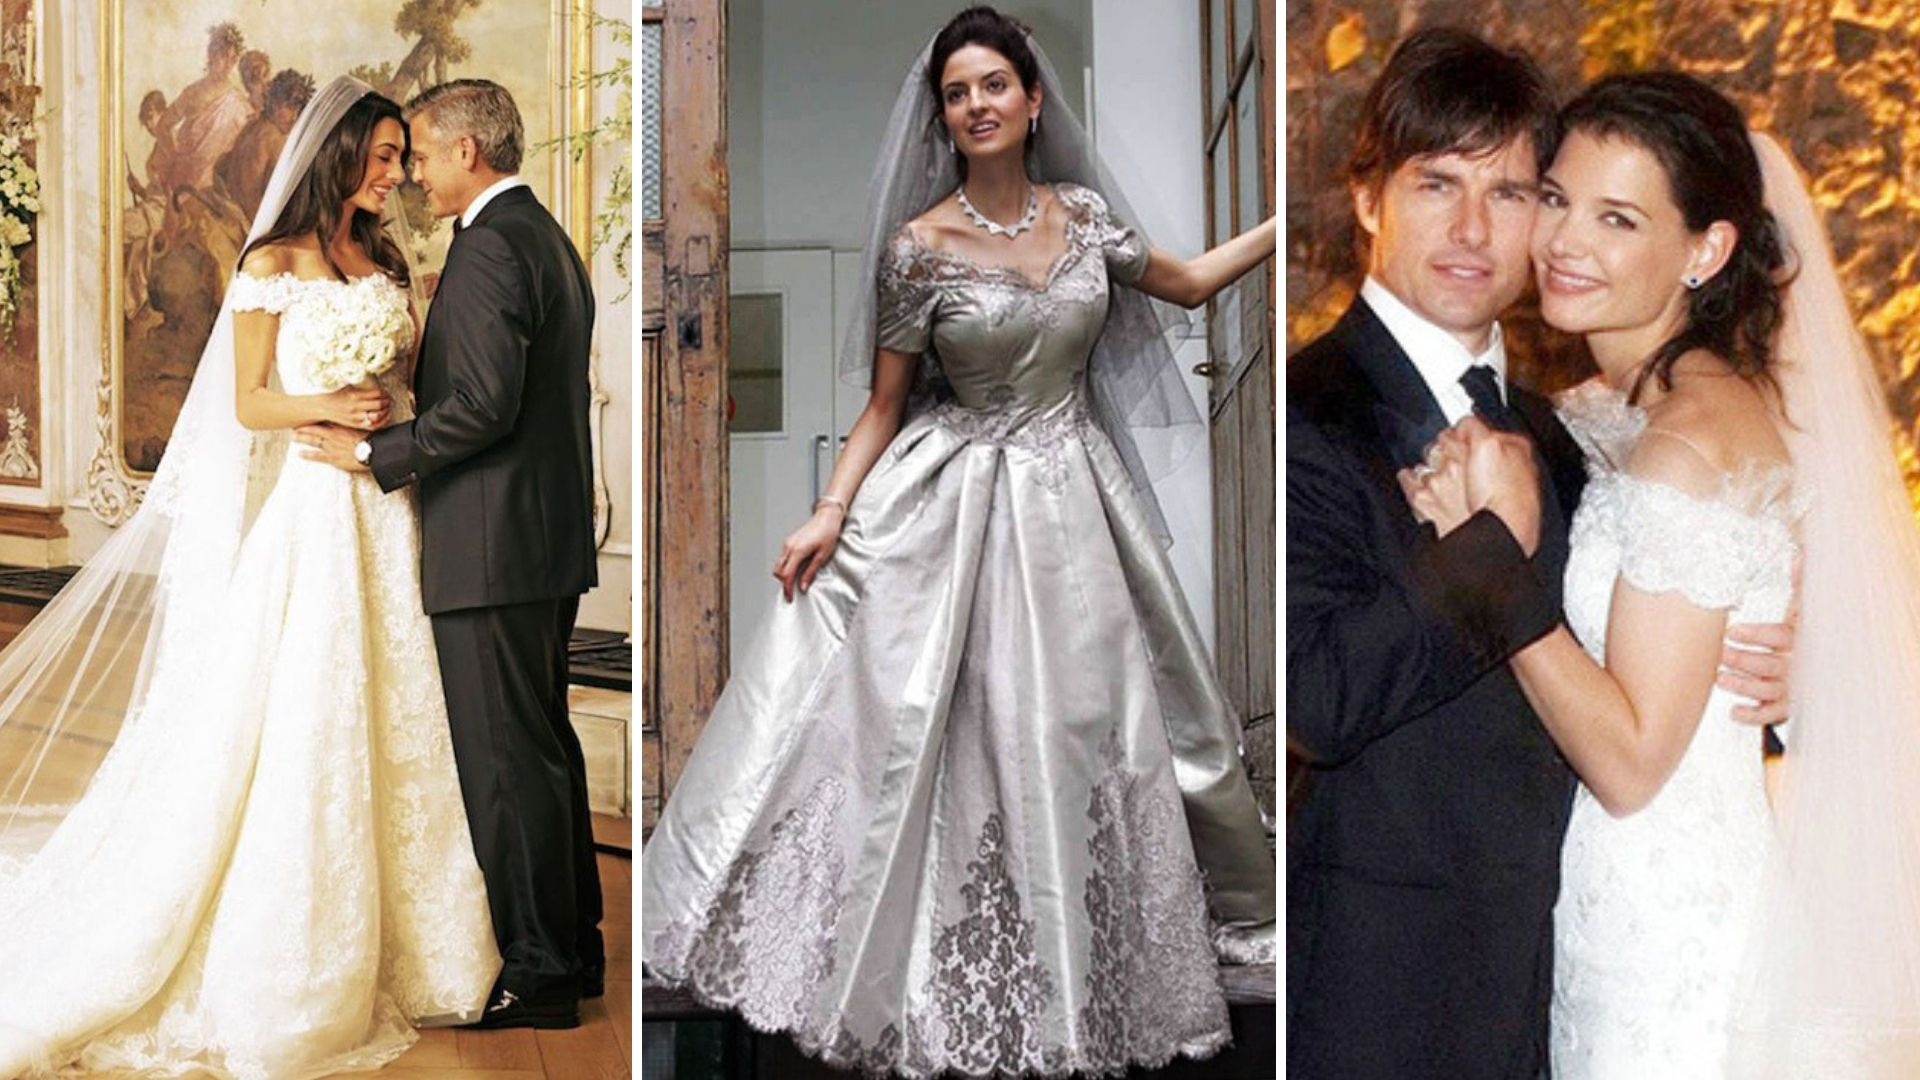 The most expensive wedding dress  The Most Expensive Wedding Dresses in the World  Wedding Dress